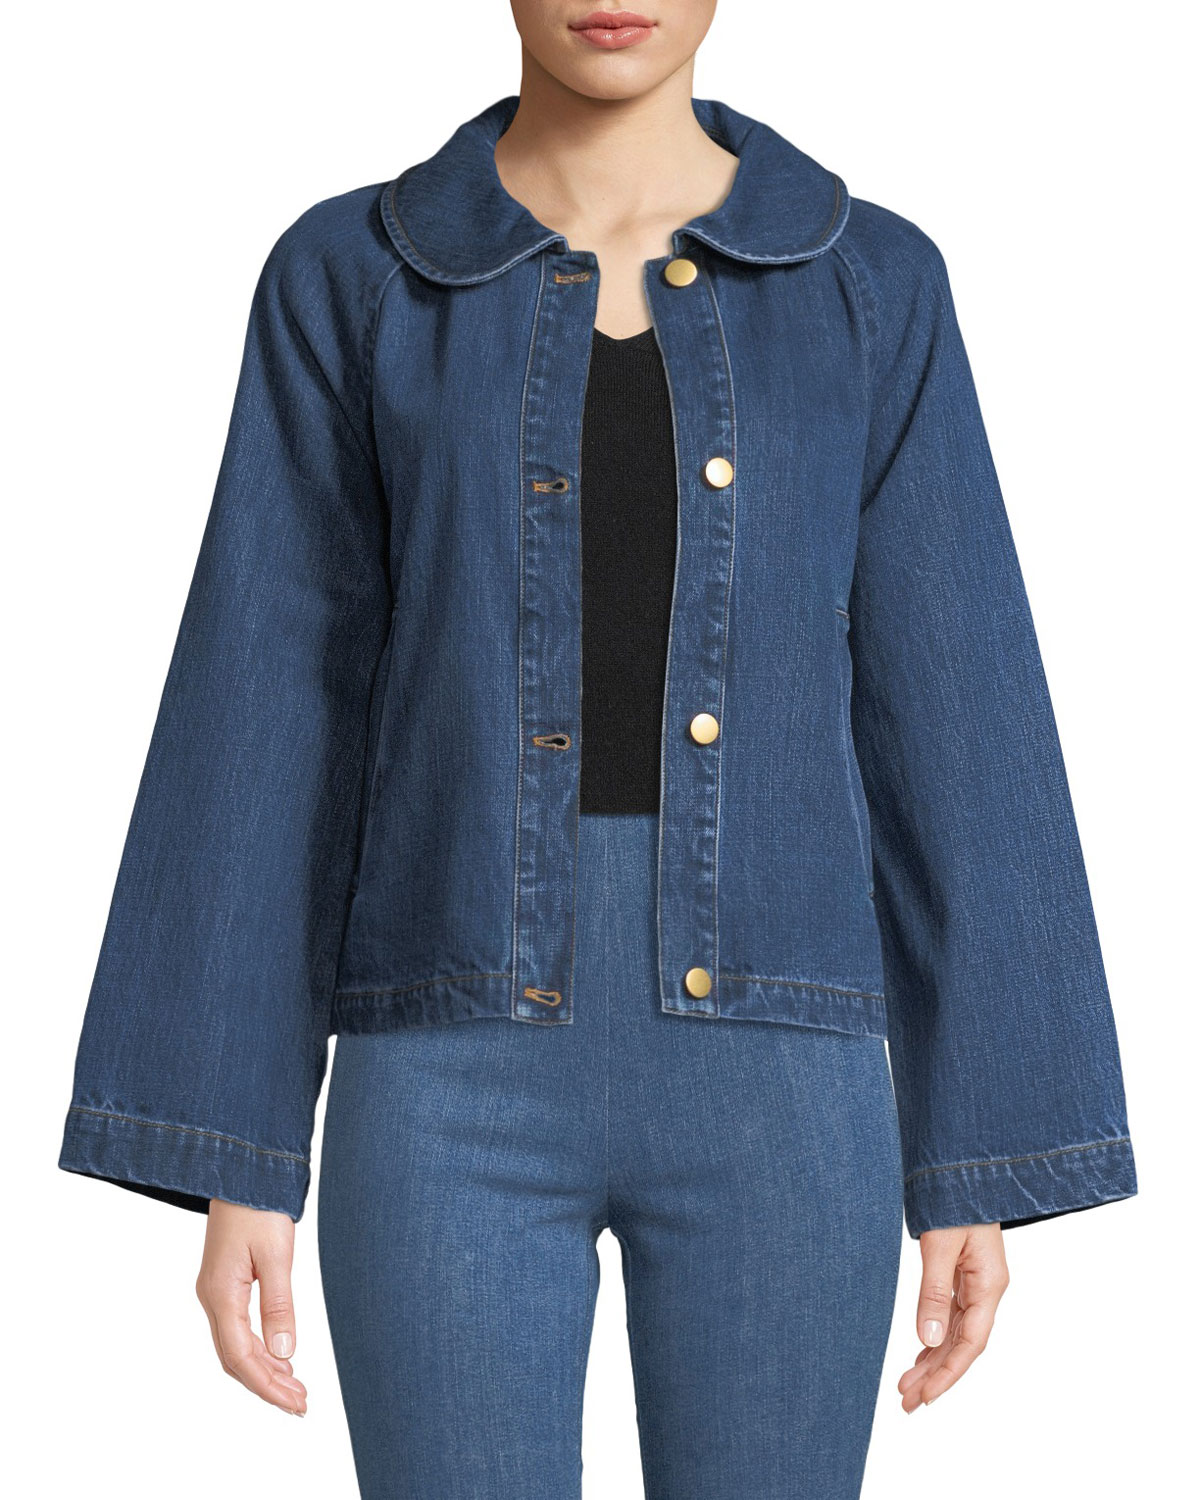 Peter Pan Collar Button-Front A-Line Denim Jacket in Blue